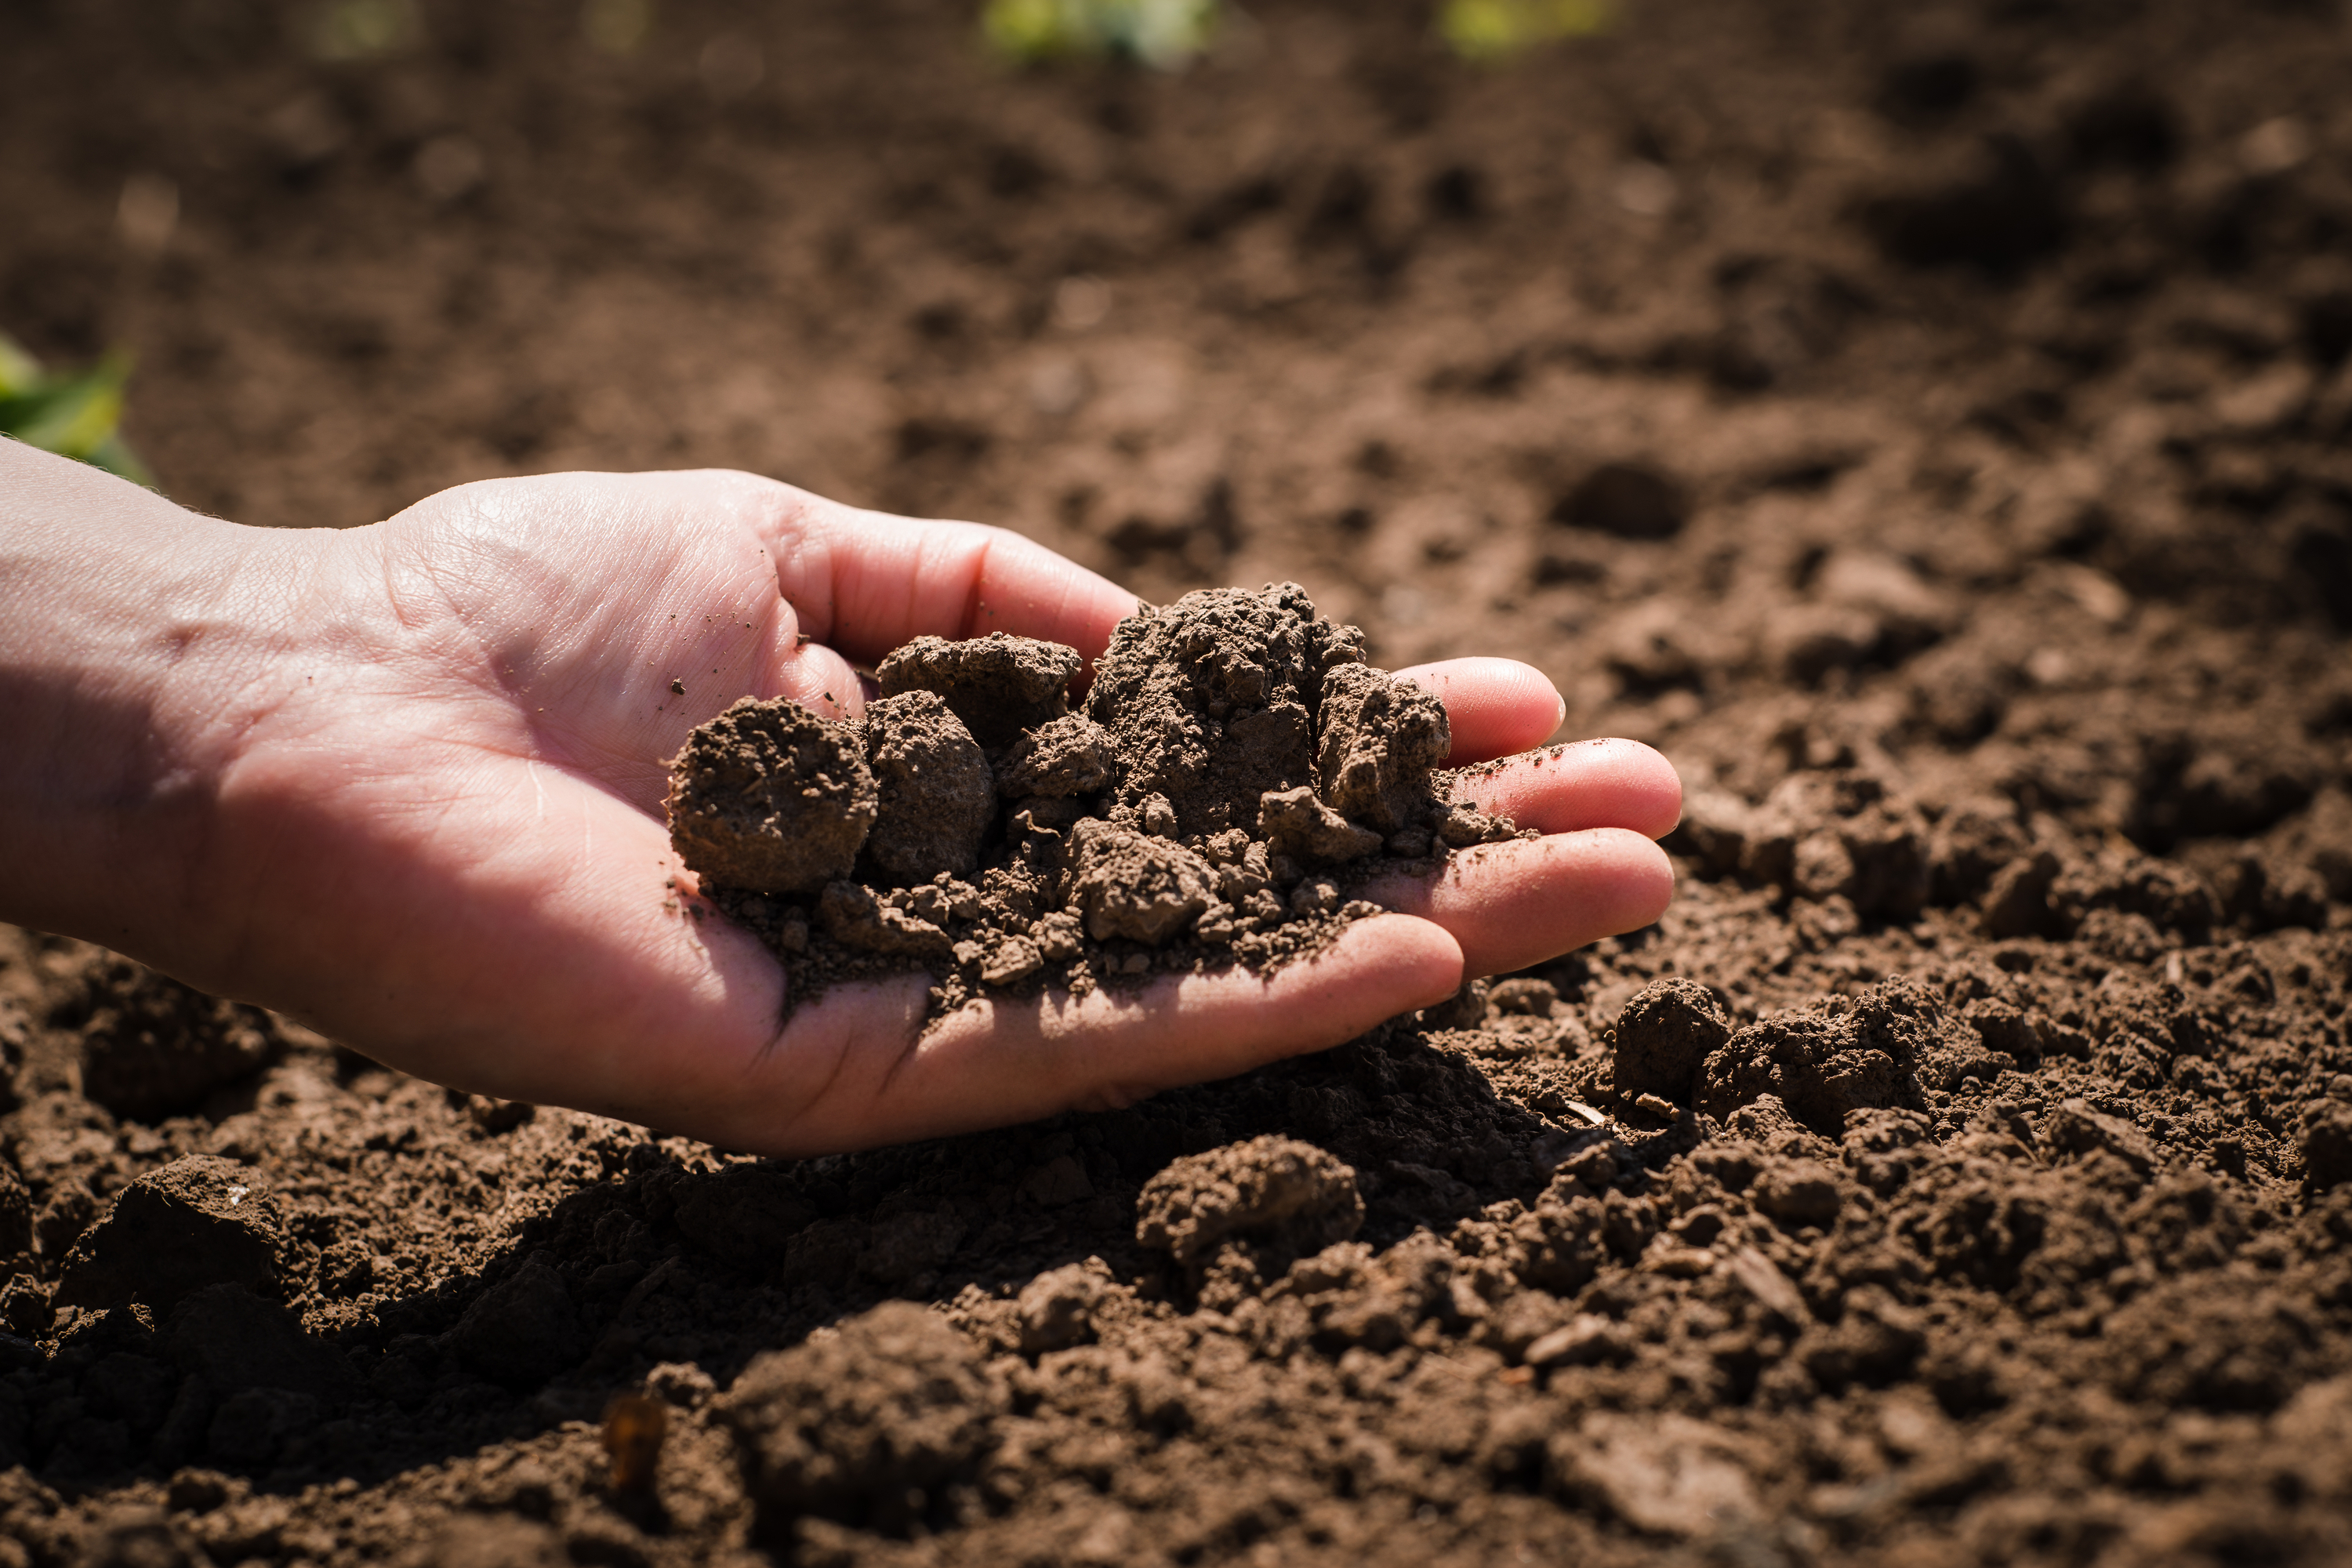 soil that is lacking nutrients